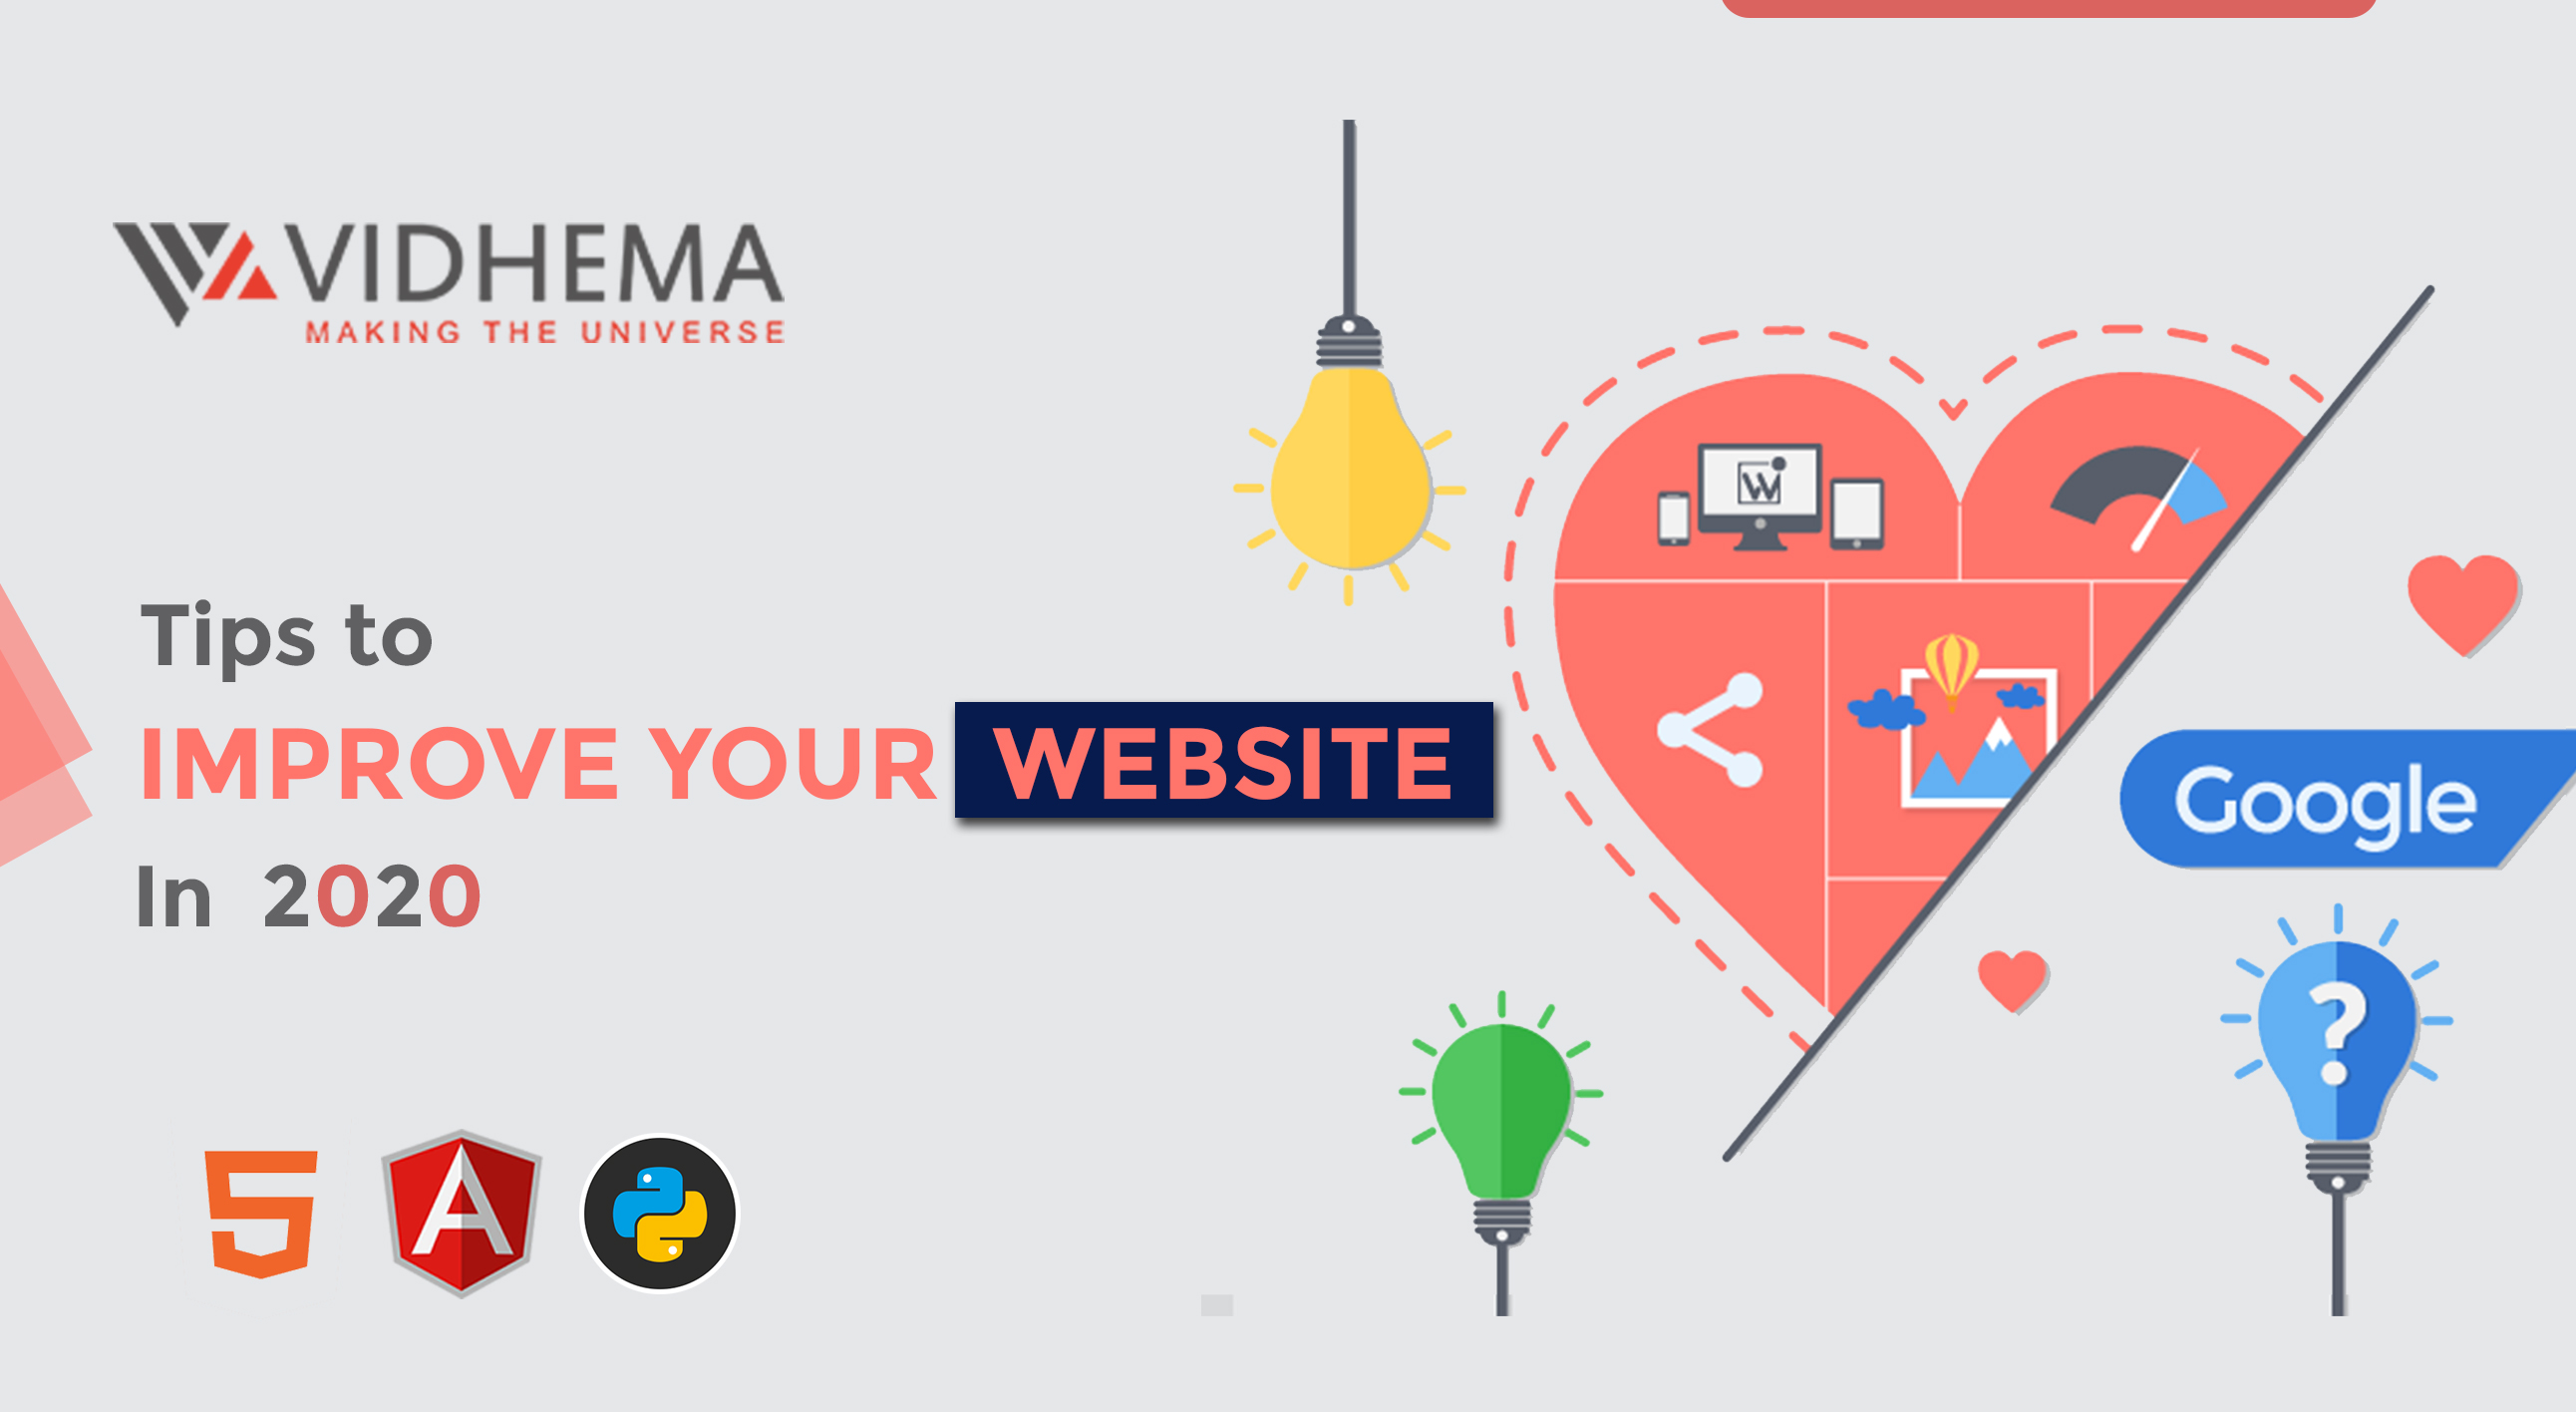 Tips To Improve Your Website In 2020